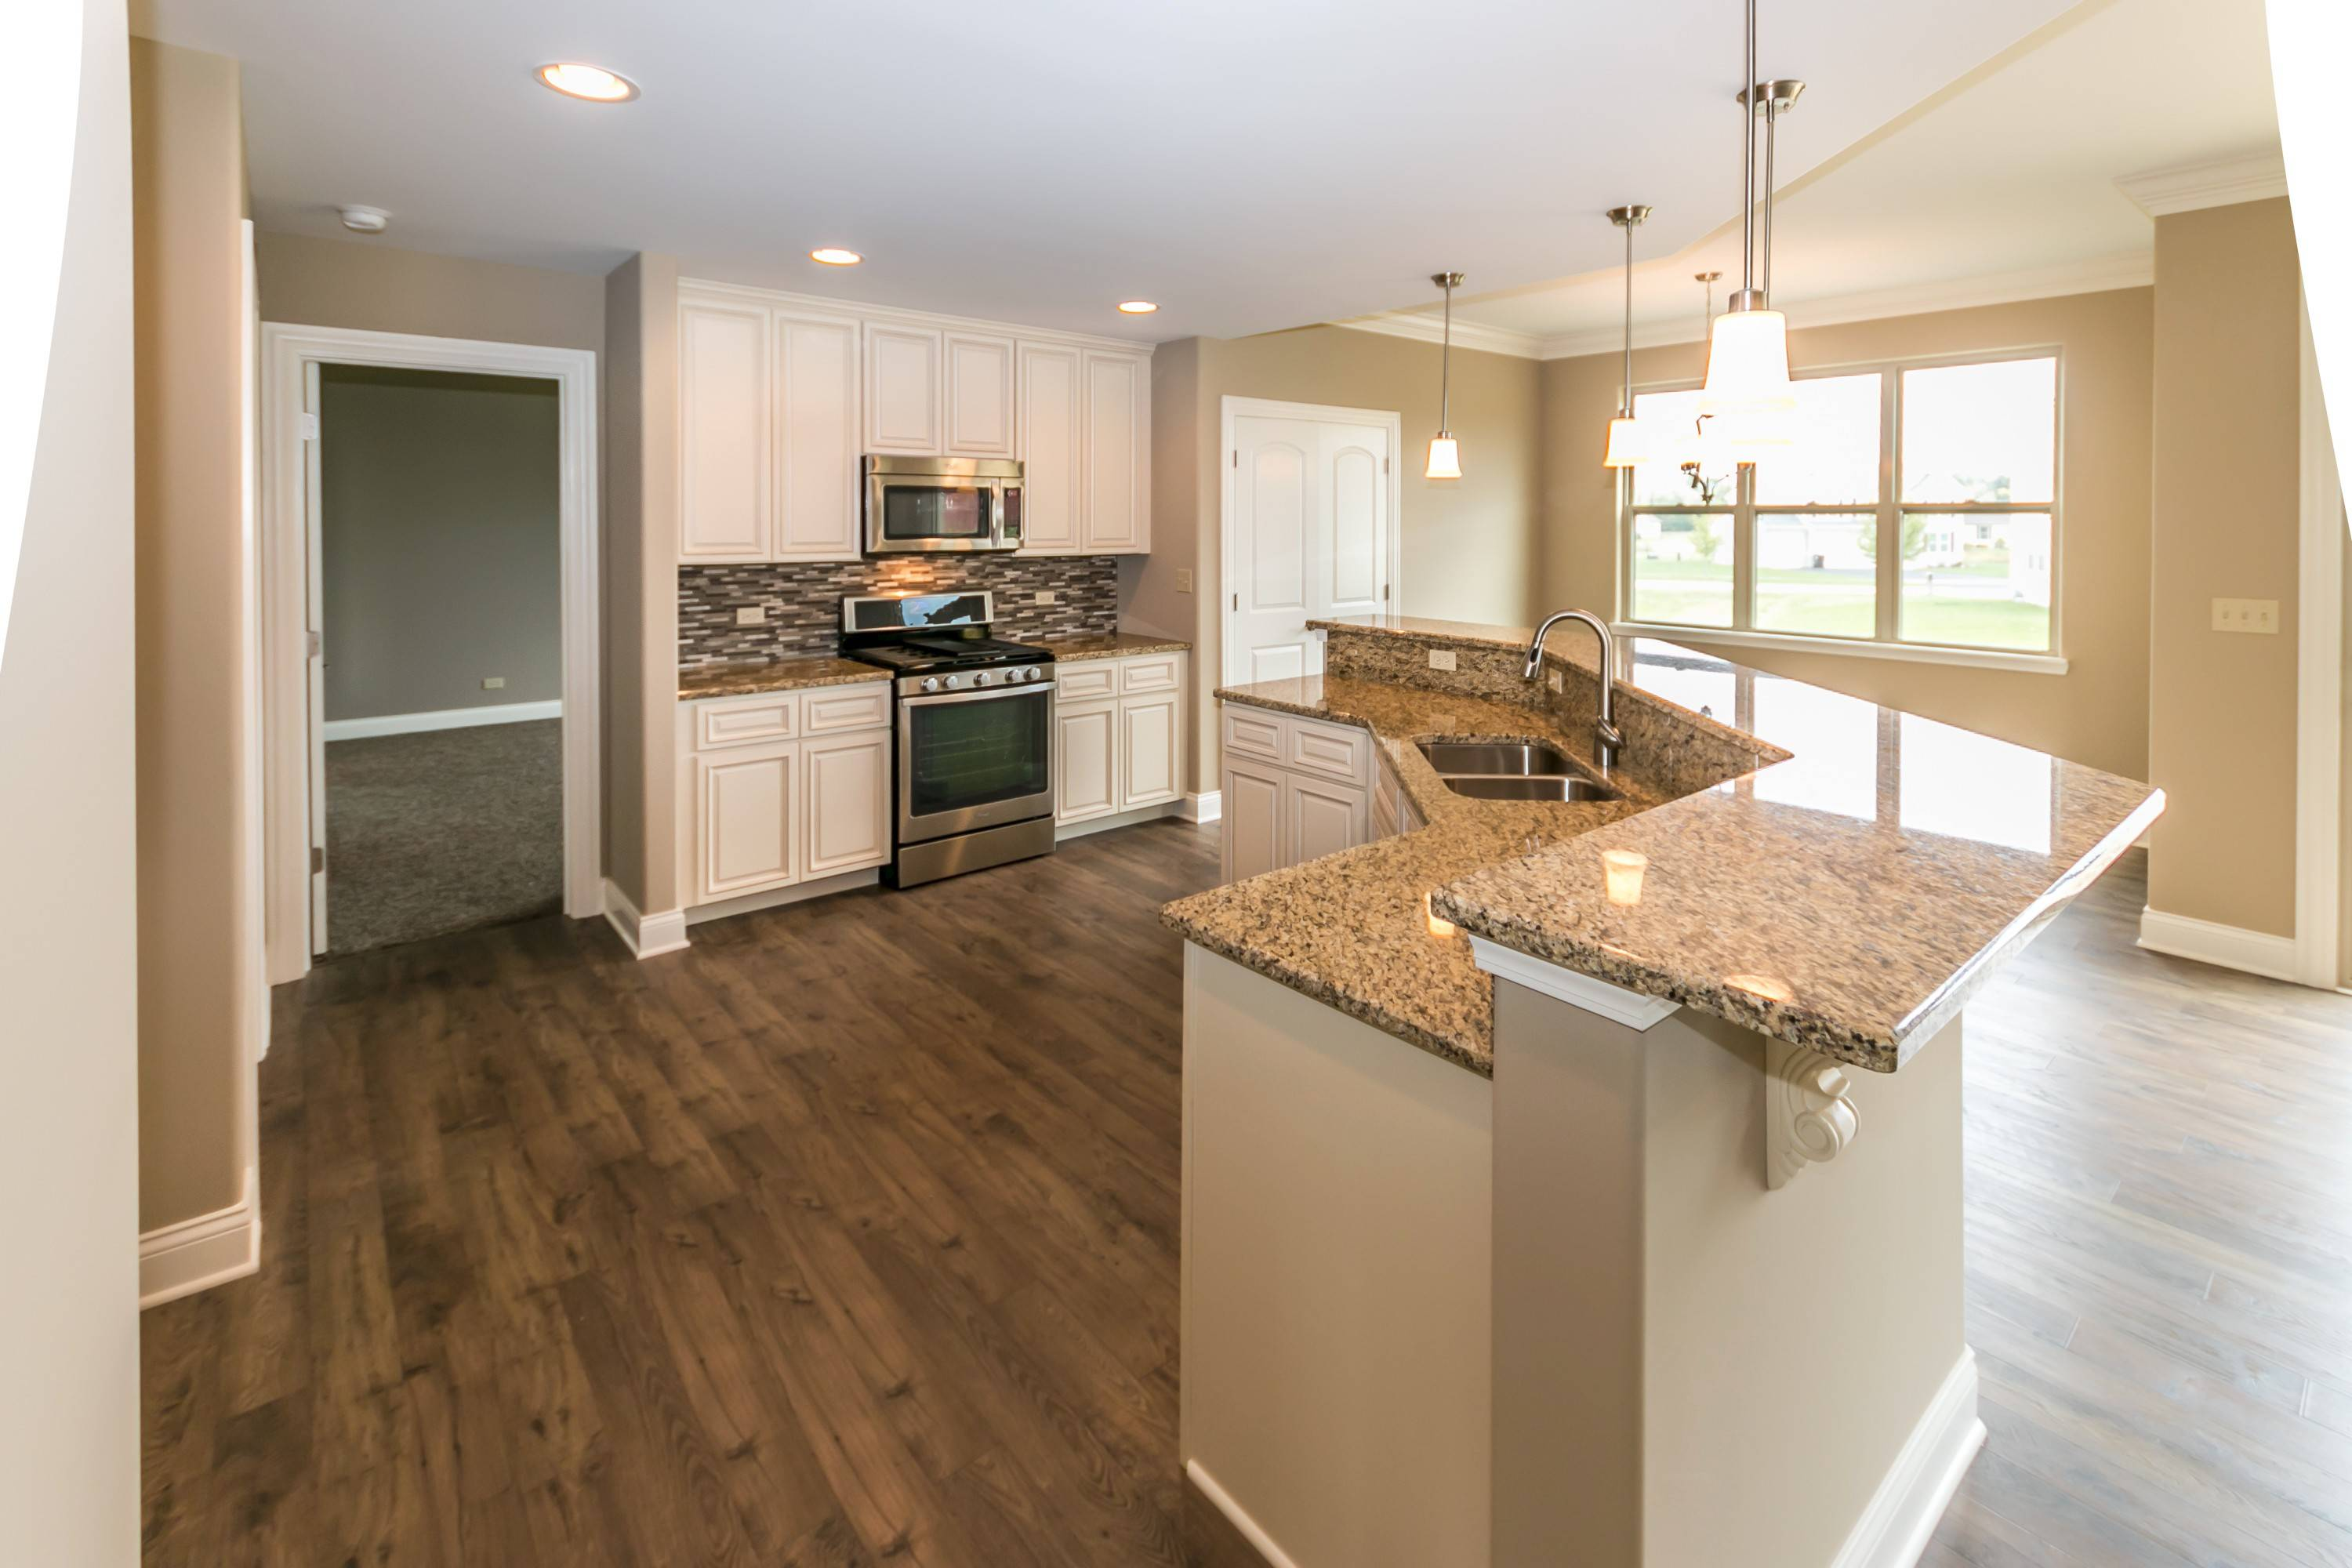 In The Harrison Model, The Kitchen Is Open To The Breakfast Nook With A Sink